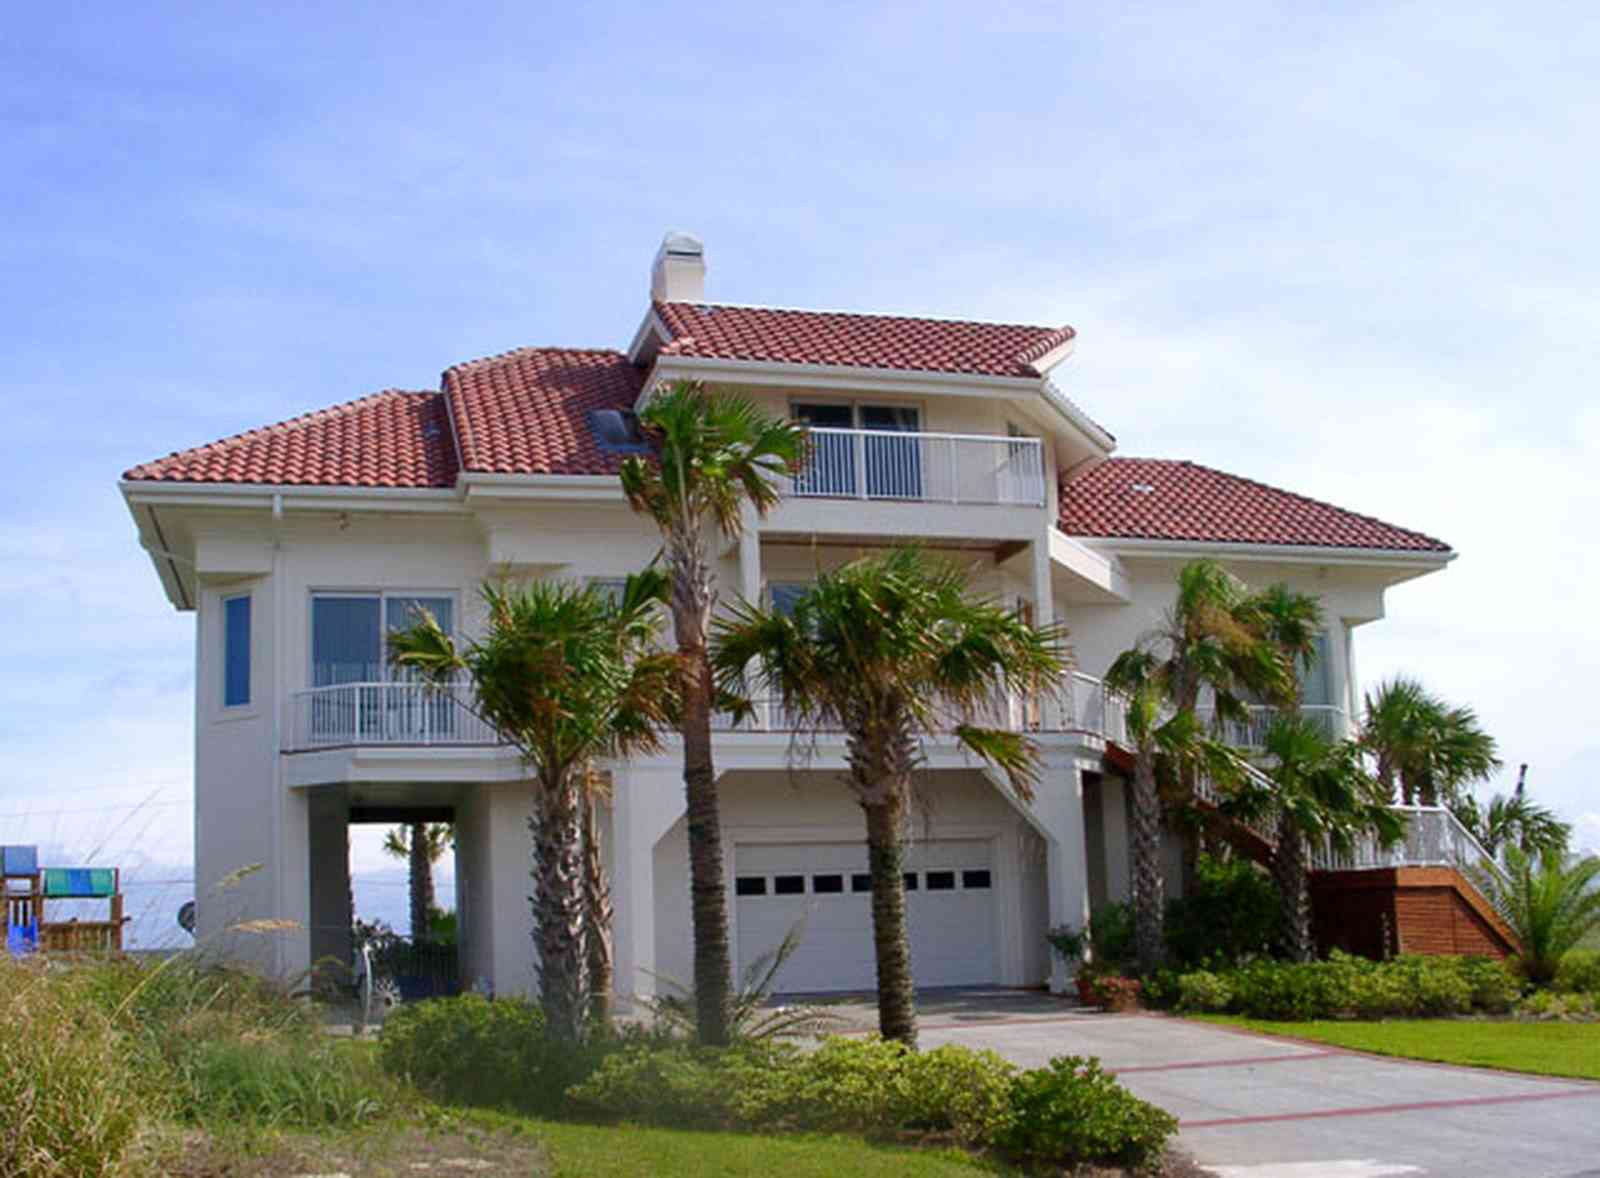 Pensacola-Beach:-Hermosa-St-Homes_13.jpg:  mediterrean villa, palm tree, gulf of mexcio, red tiled roof